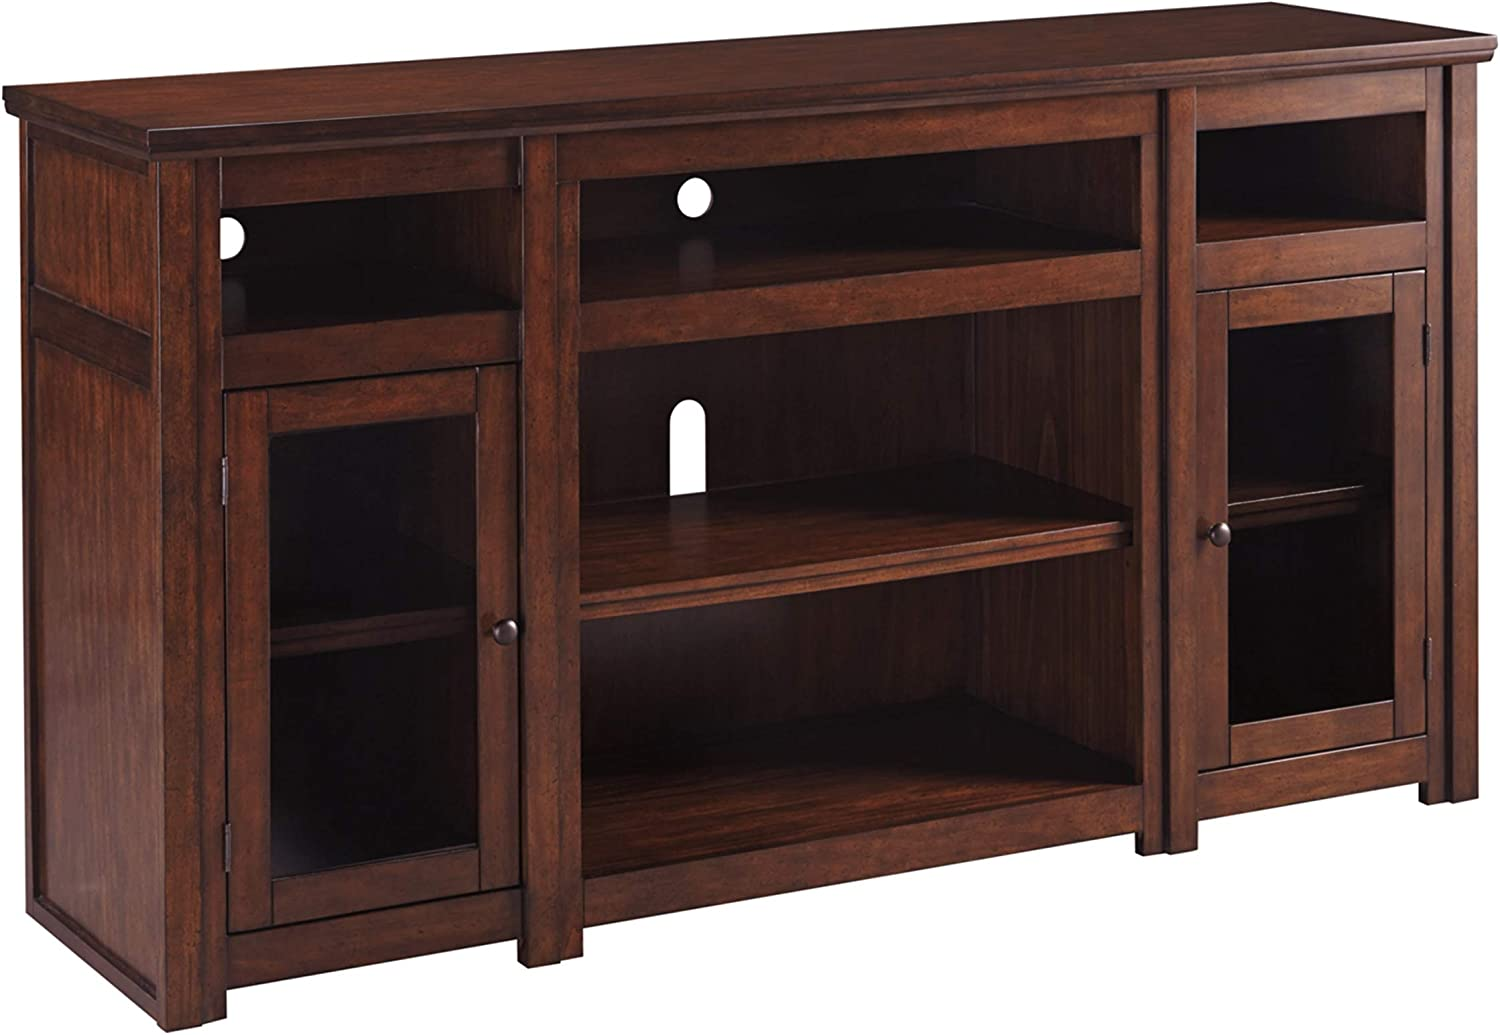 Signature Design by Ashley Harpan Extra Large TV Stand with Fireplace Option Reddish Brown